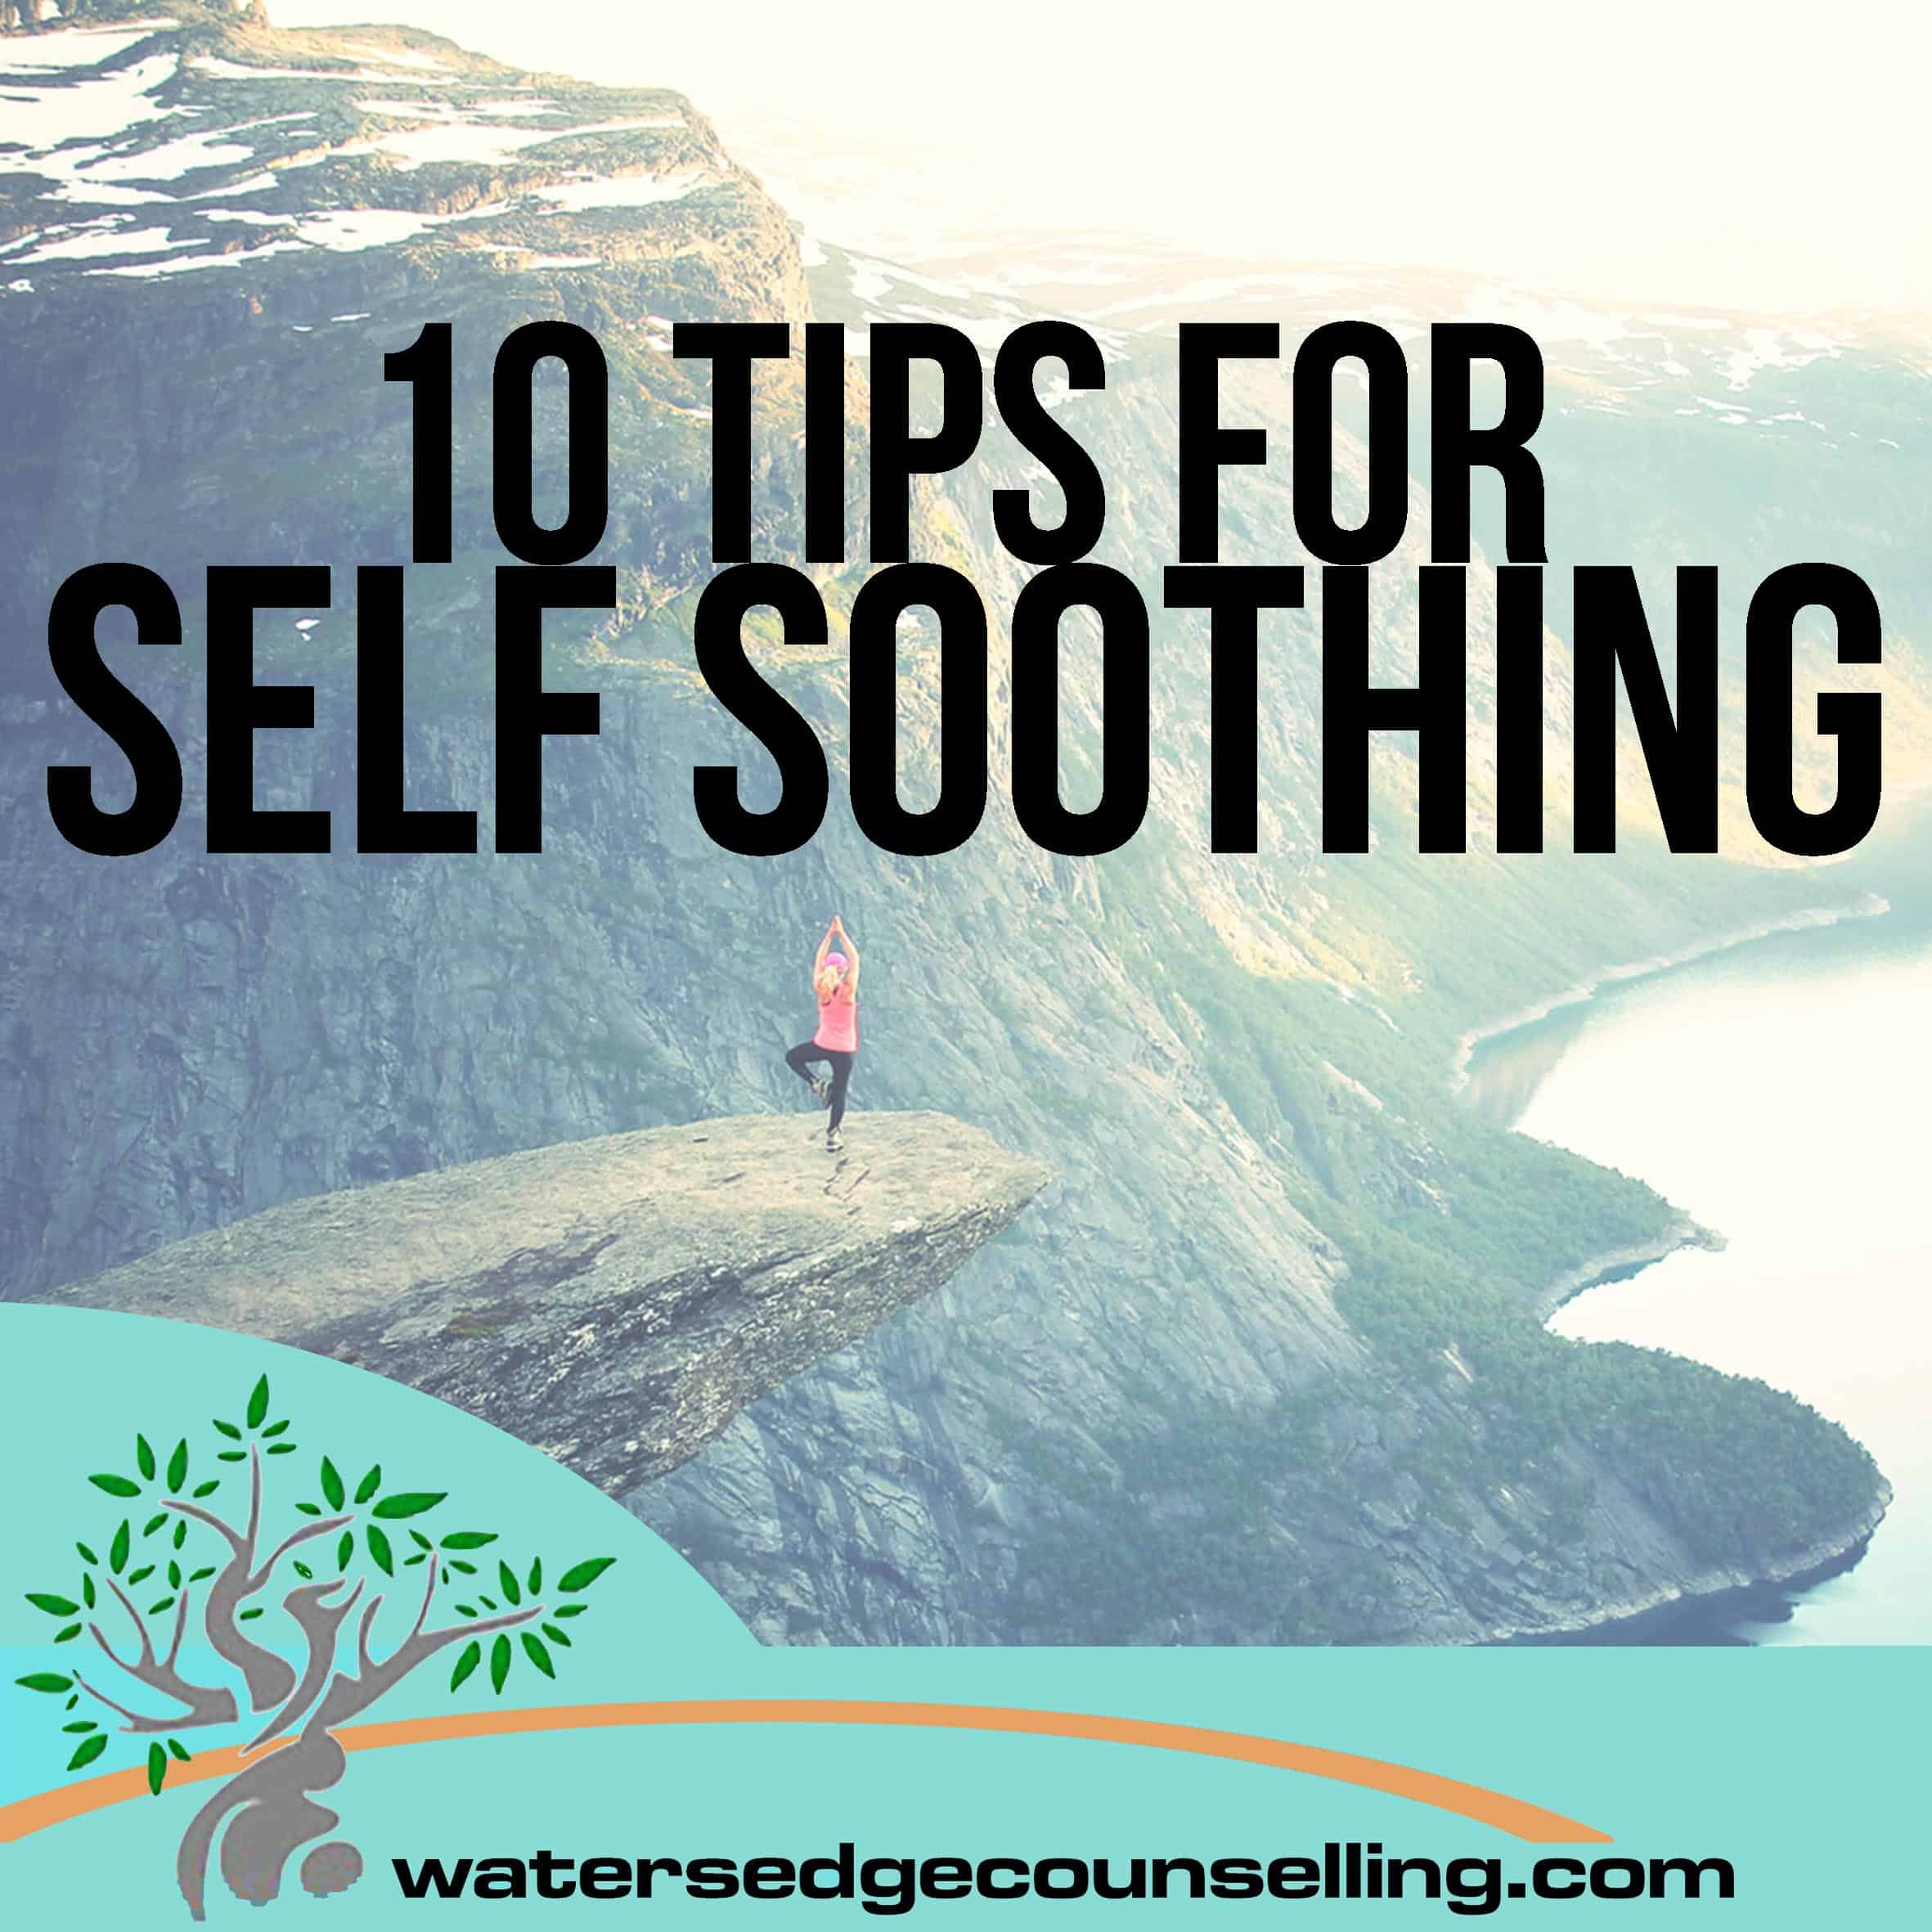 10 Tips For Self Soothing